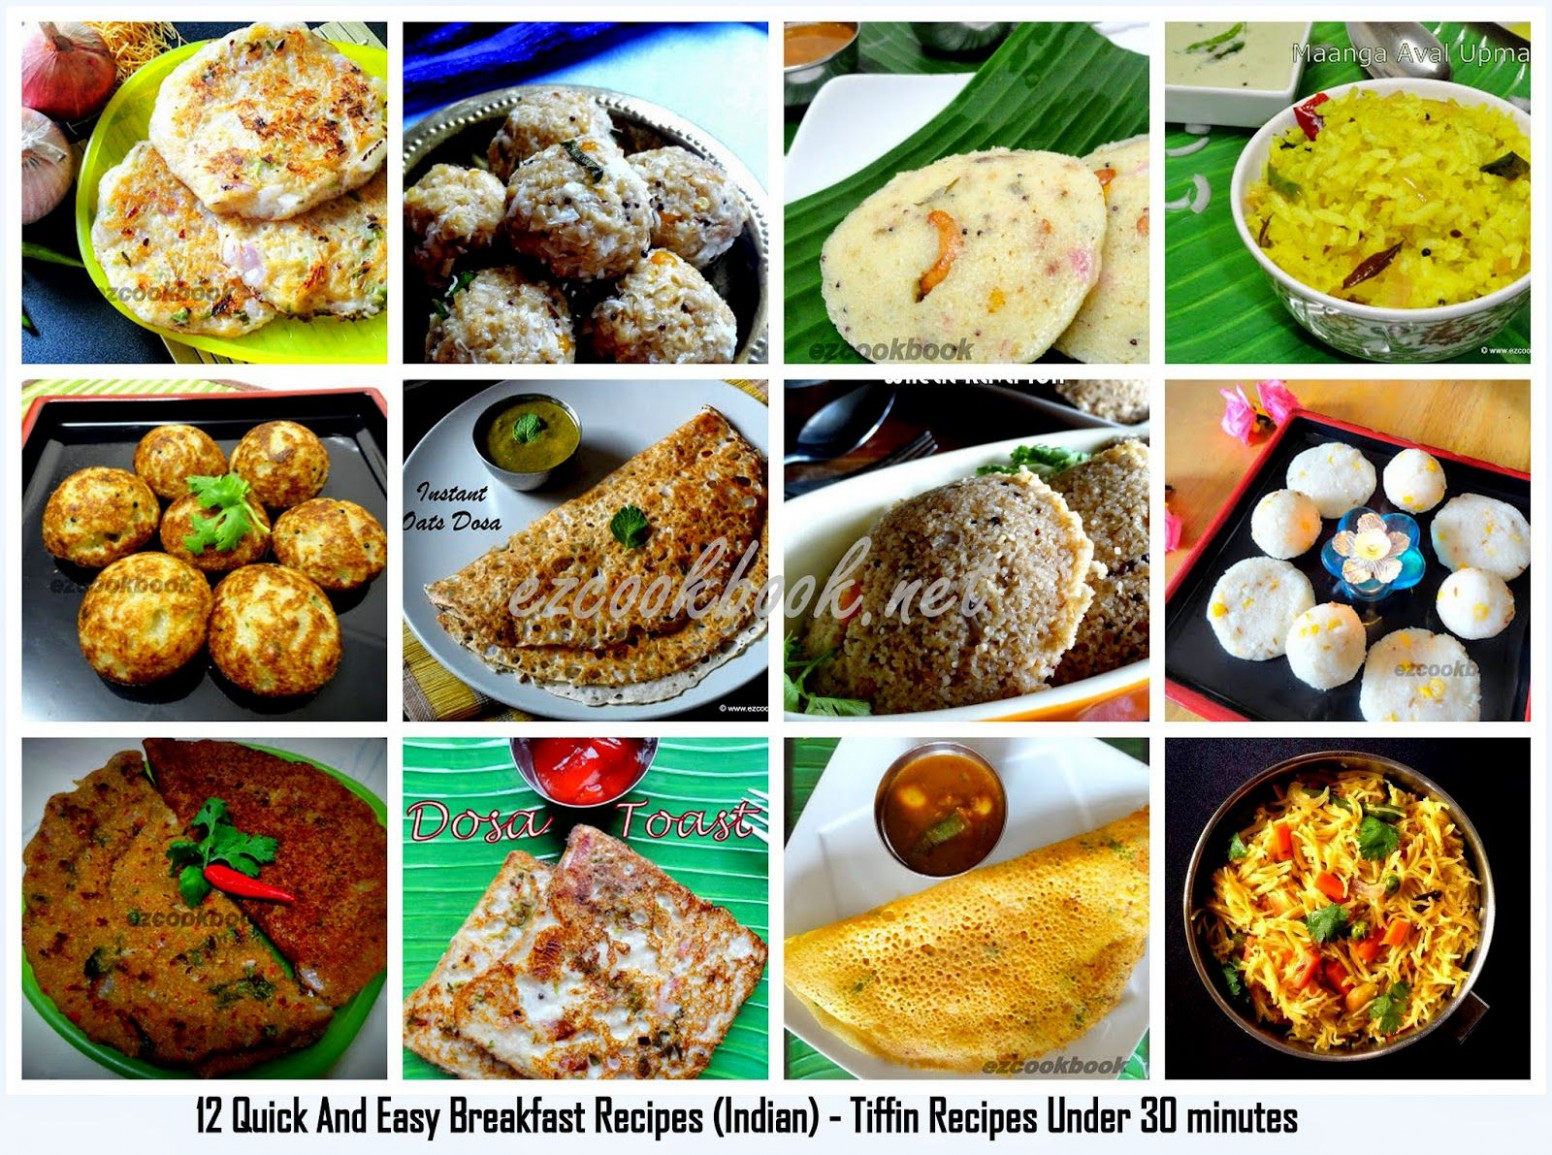 12 Quick And Easy Breakfast Recipes (Indian) | Breakfast ..